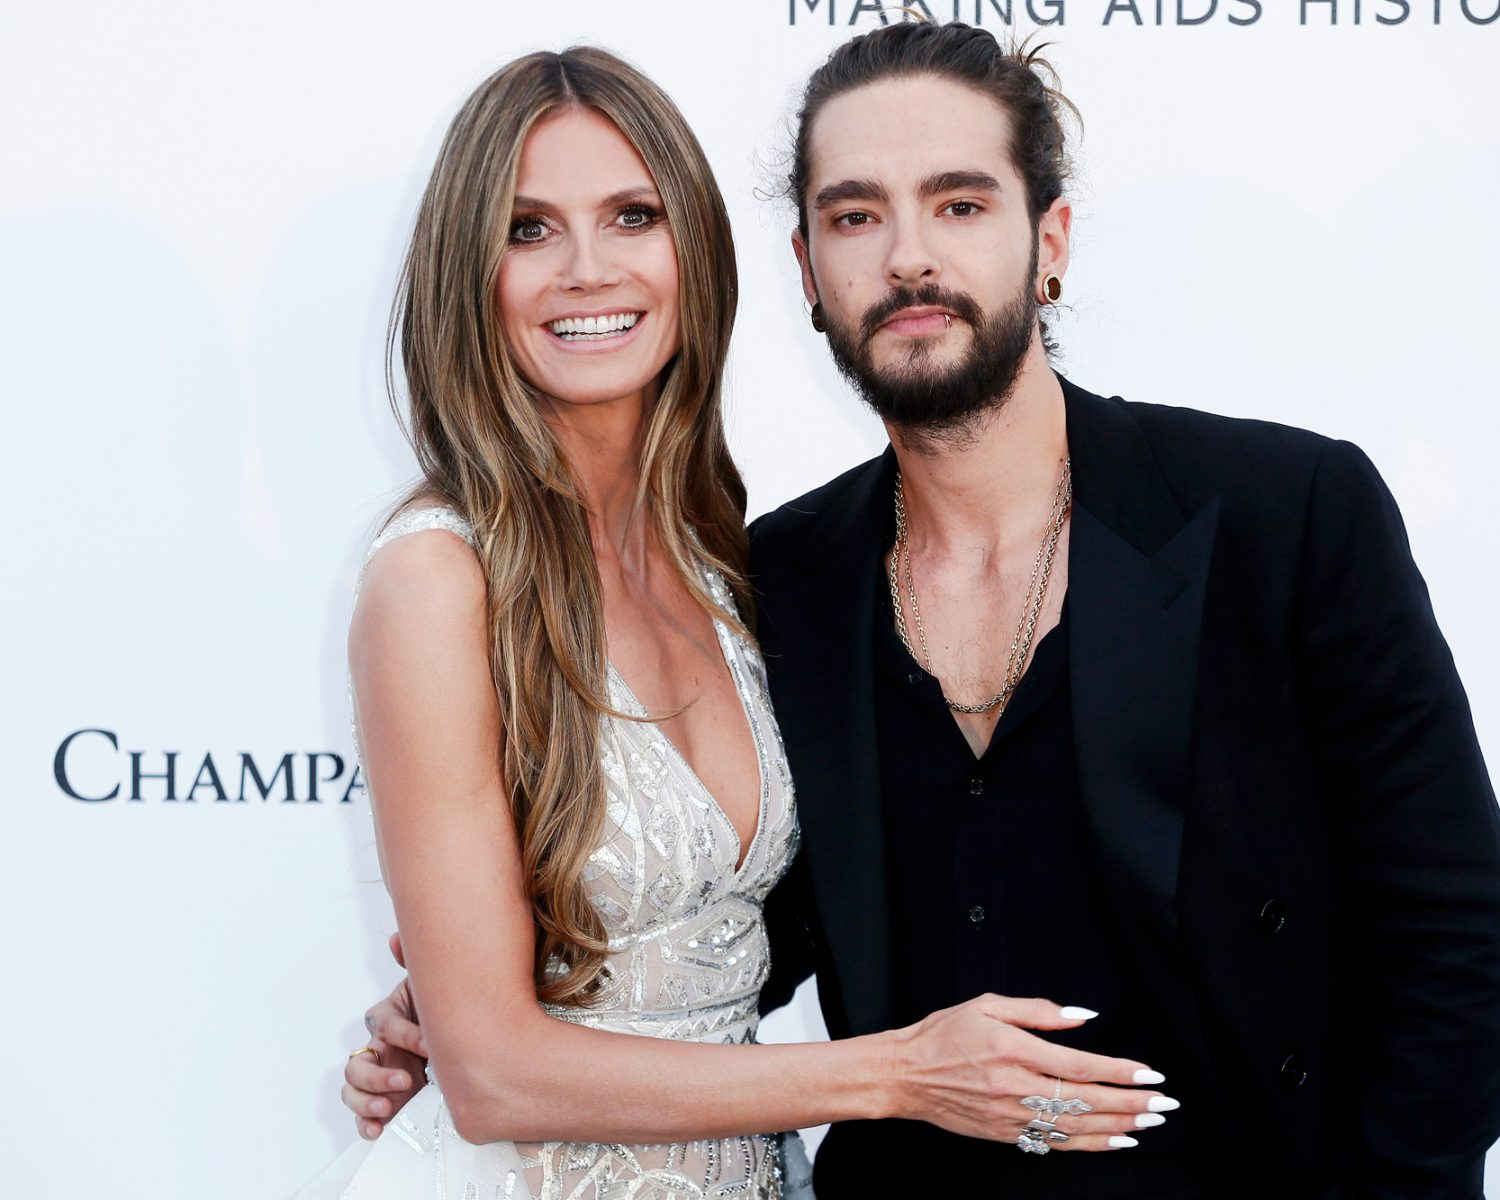 Heidi Klum poses topless and packs the PDA with her husband Tom Kaulitz on the beach – look at the romantic photo!